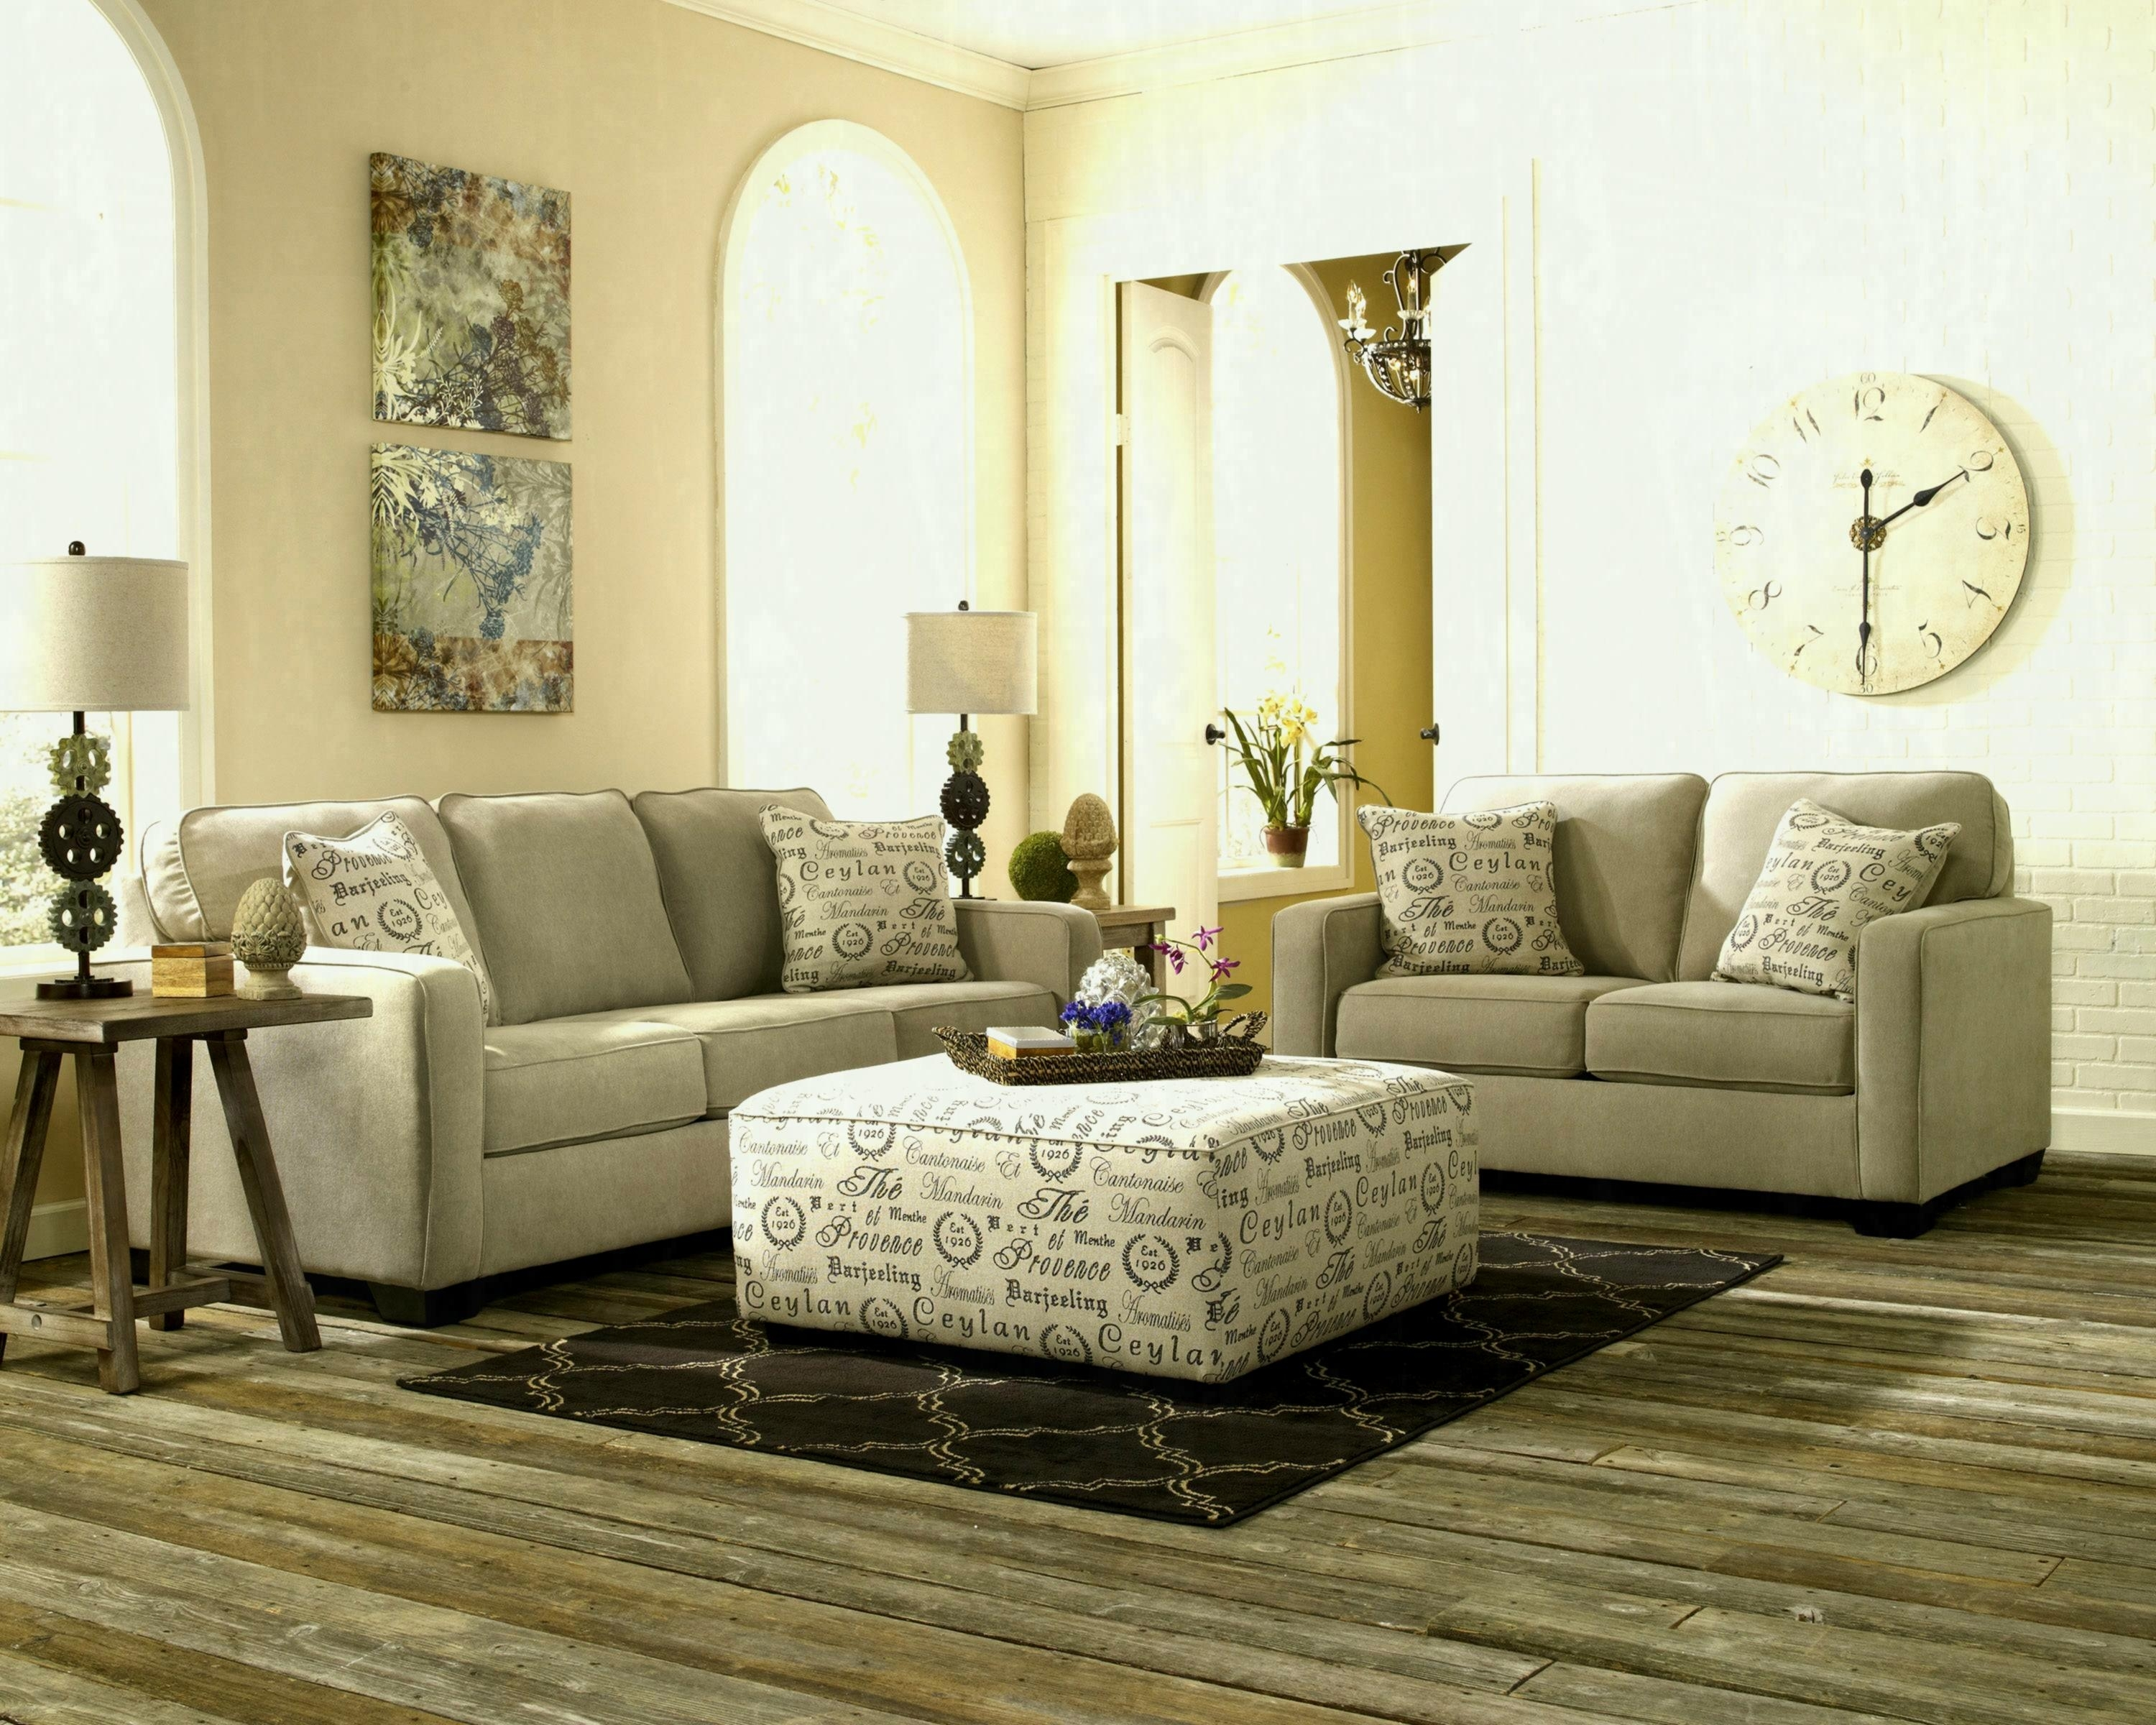 Added To Cart Aquarius Light Grey Piece Sectional W Raf Chaise With Regard To Aquarius Light Grey 2 Piece Sectionals With Laf Chaise (Image 3 of 25)